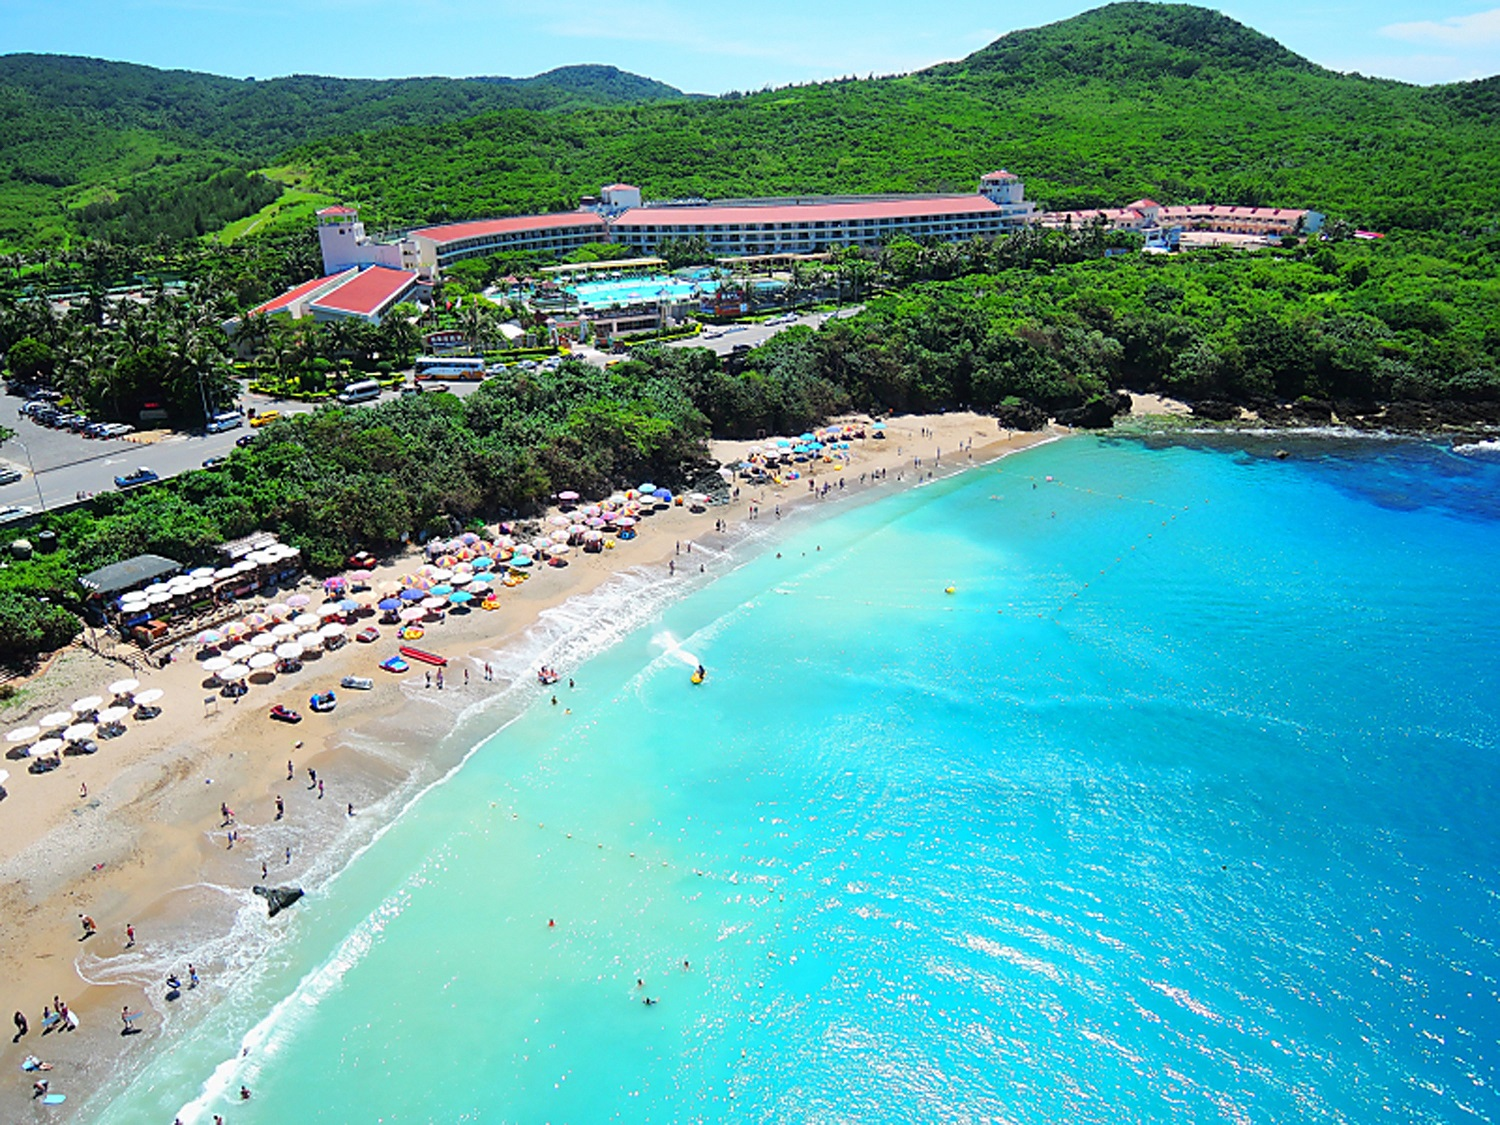 Howard Beach Resort Kenting Won Best